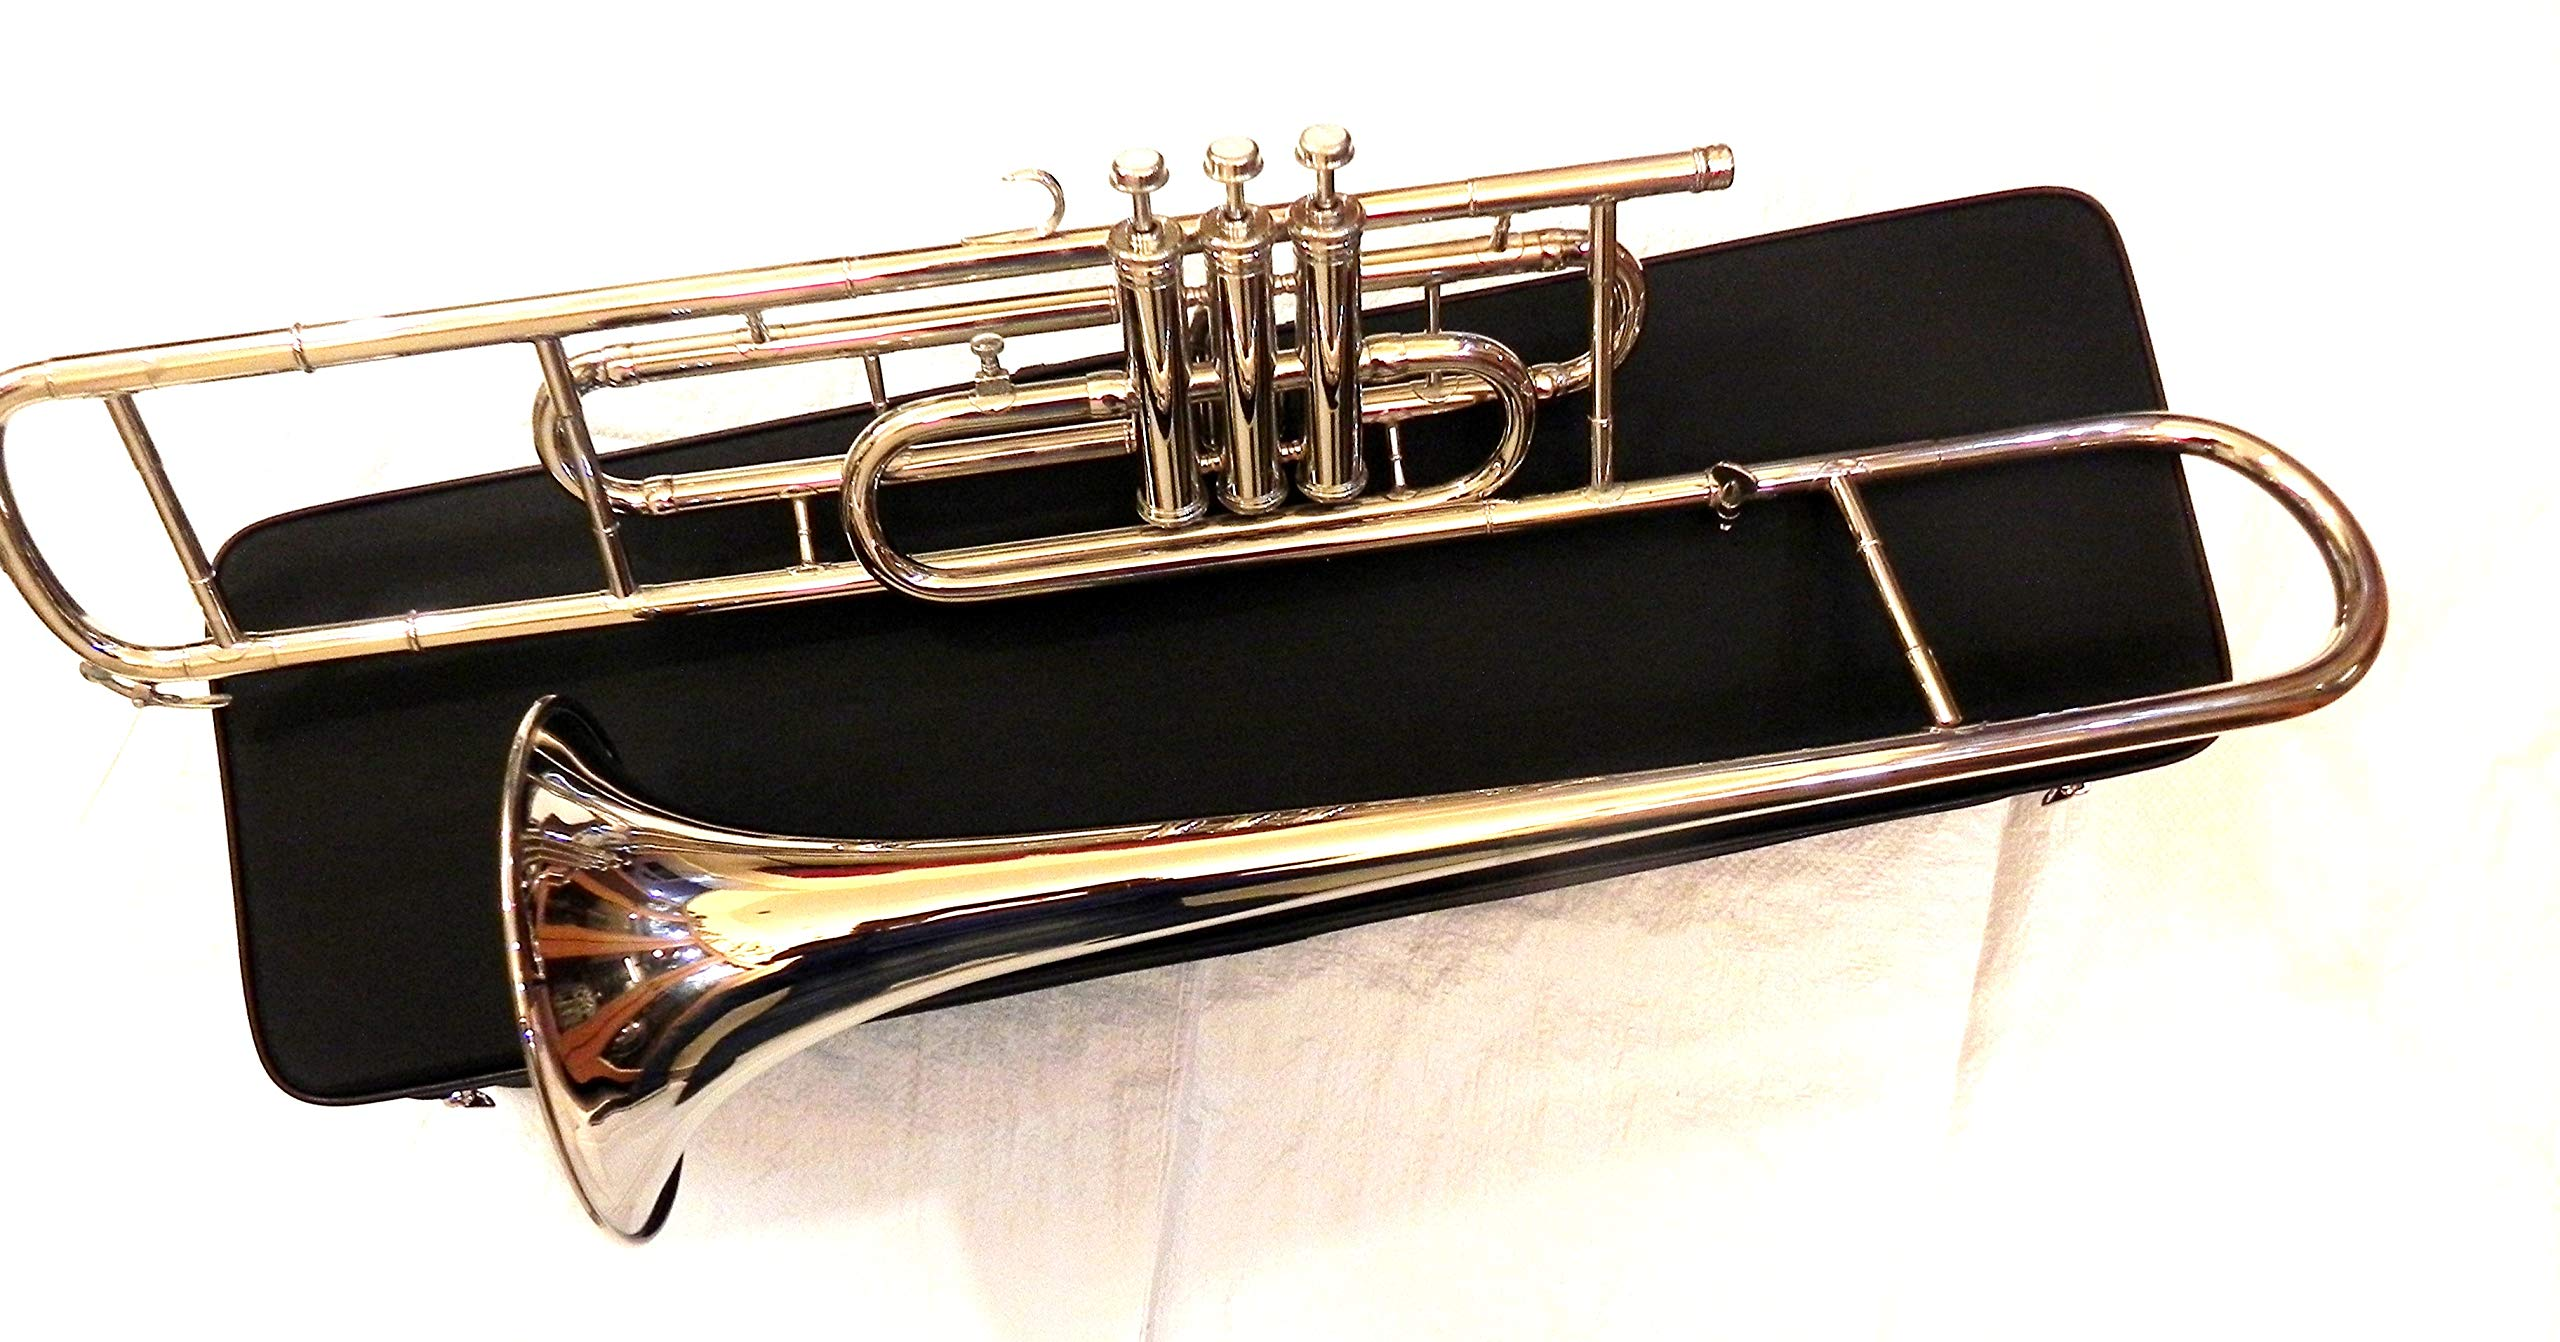 IM 3-Valve Silver Bb Tenor Trombone for Trumpet Crossover Players with Designer Hardcase